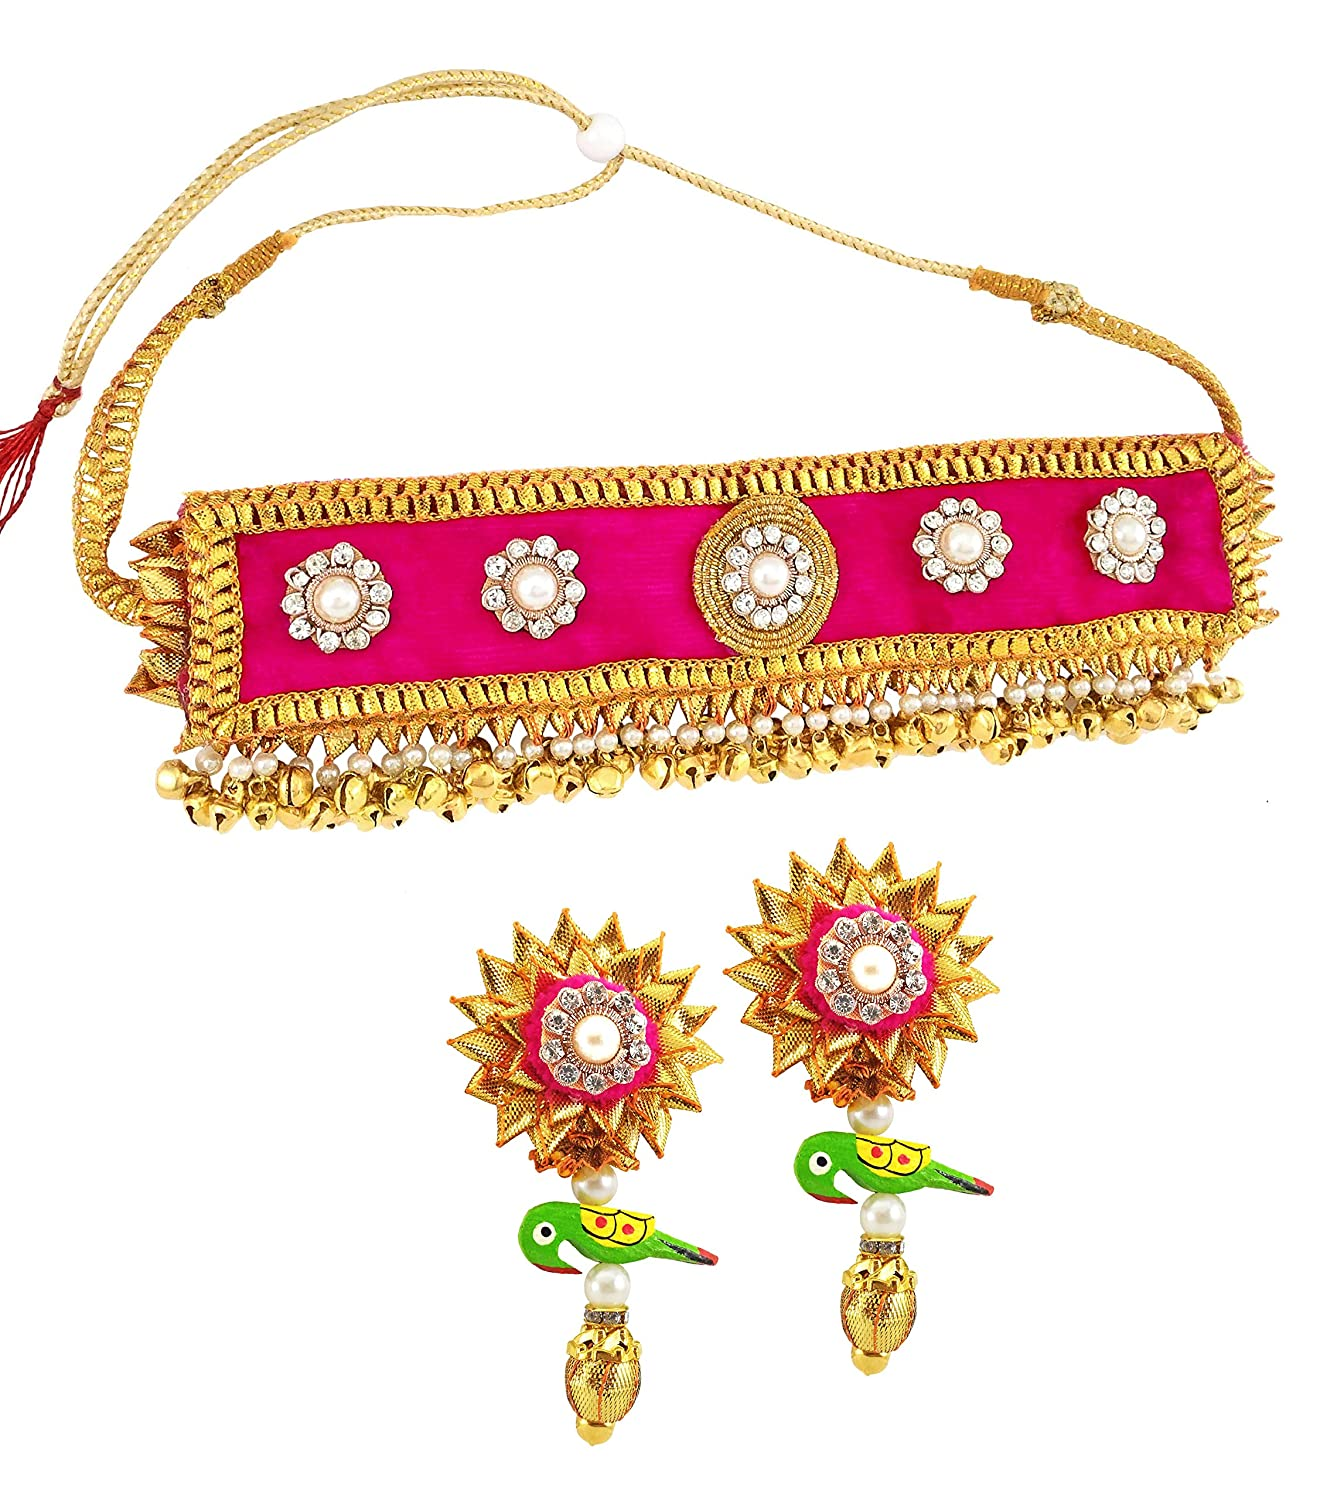 Bridal & Wedding Party Jewelry Search For Flights Indian Fashion Wedding Jewelry Earrings Necklace Gold Bridal Traditional Set Skilful Manufacture